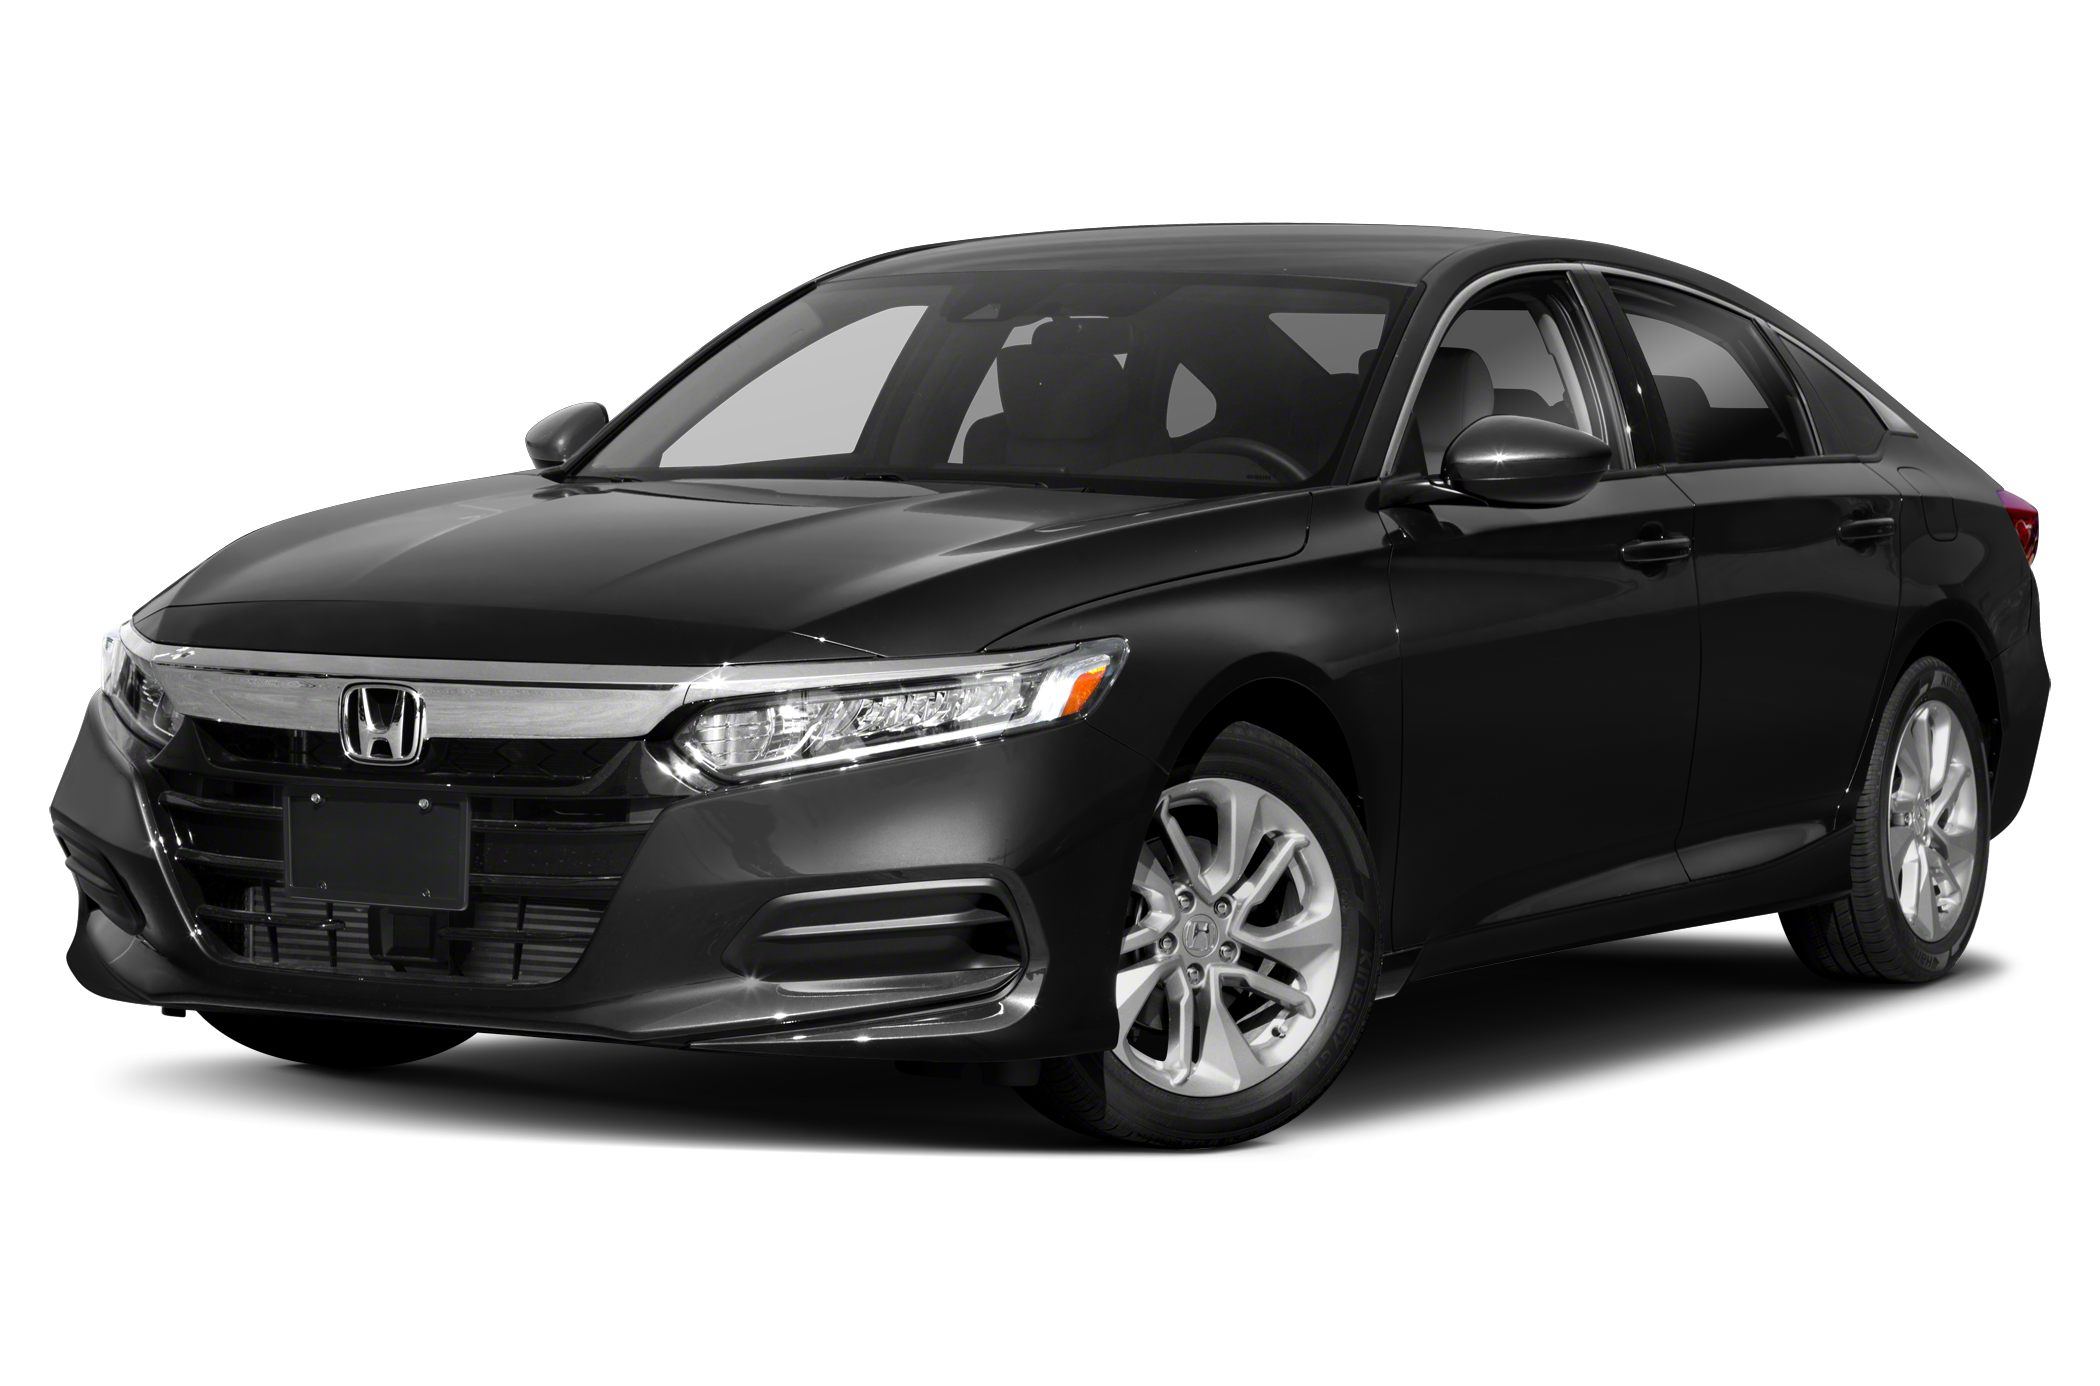 2018 Honda Accord >> 2018 Honda Accord Lx 4dr Sedan Pictures